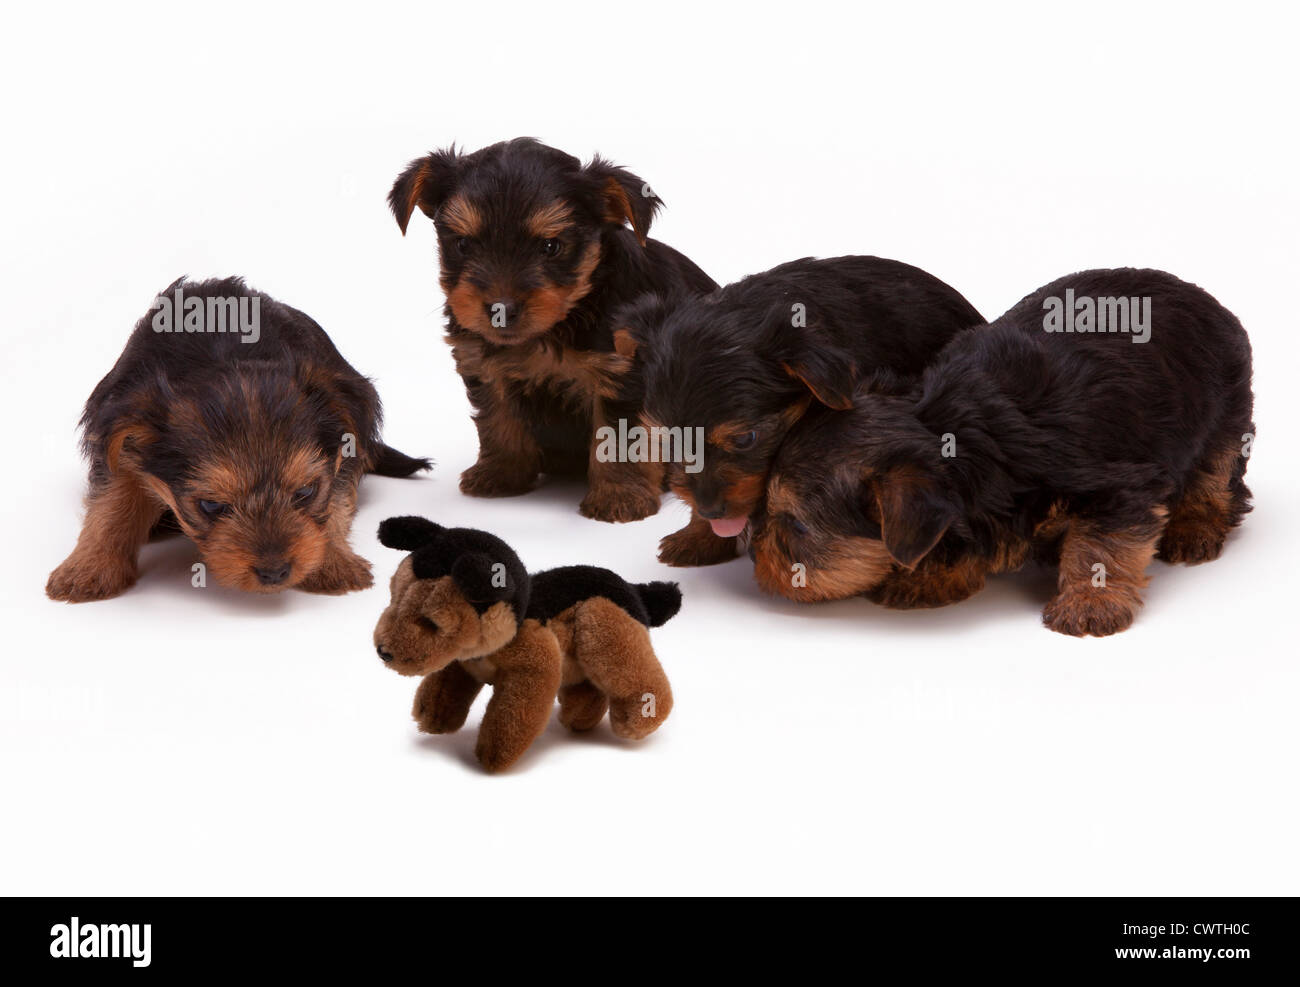 Four Yorkie puppies inspecting a soft dog toy Stock Photo